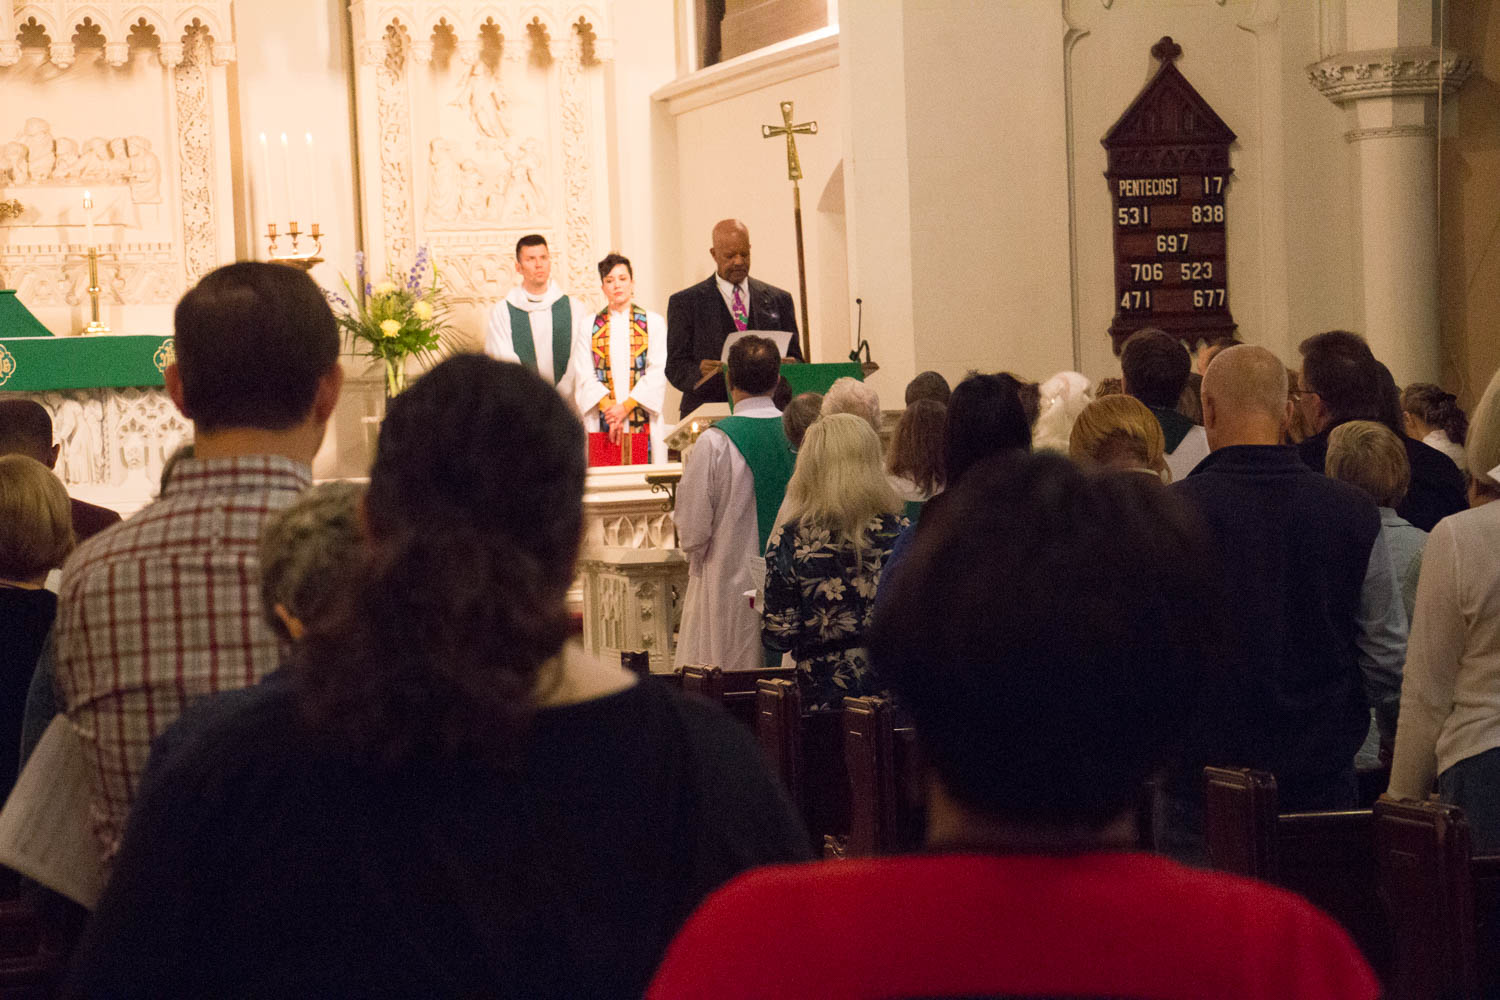 Advent members participated in the service in many ways, including reading the Word.